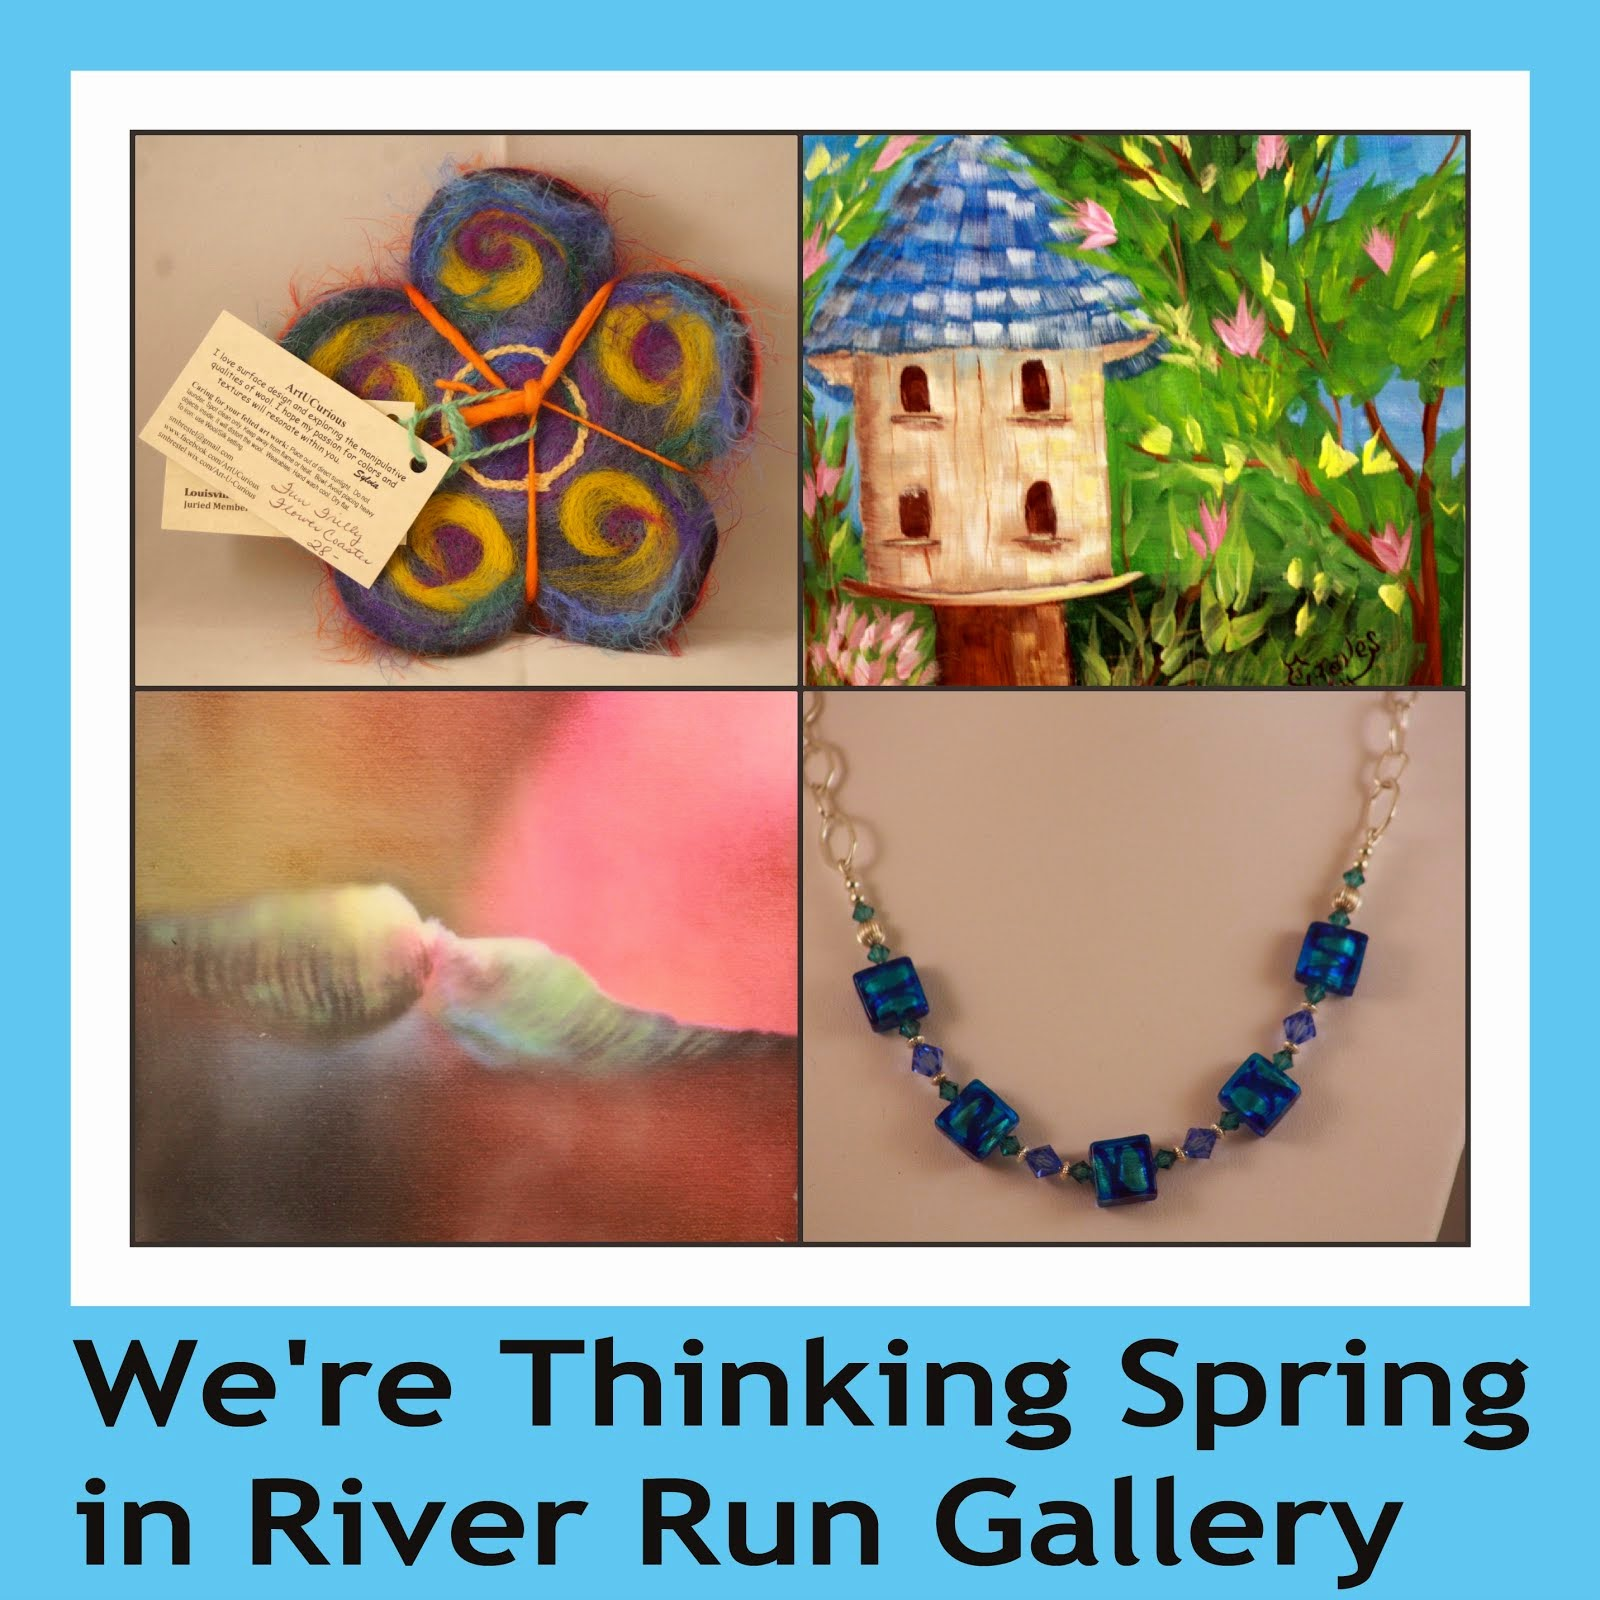 River Run Gallery Fun Art Studio